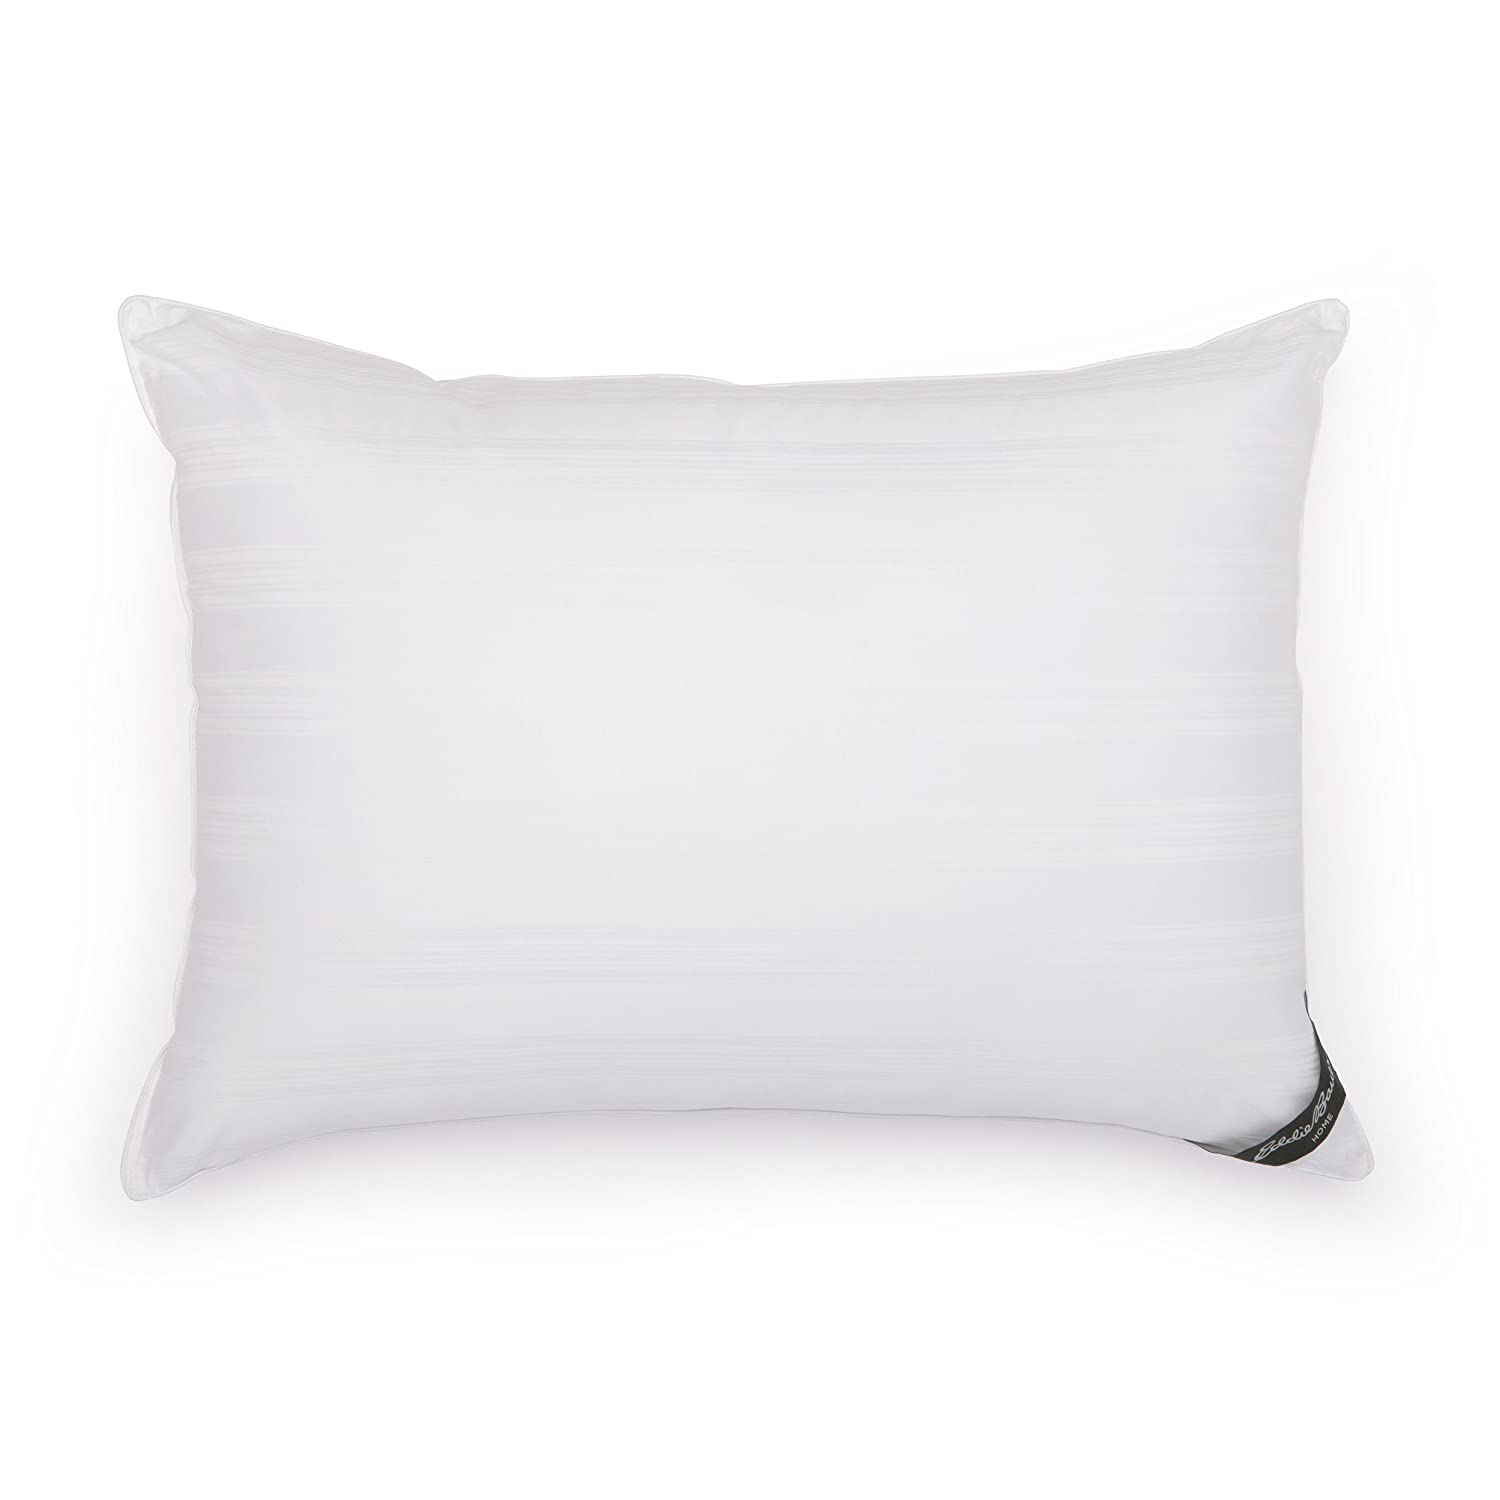 pillow home com very stomach pillows great standard sleepers flat soft extra bed duck dp down for amazon kitchen